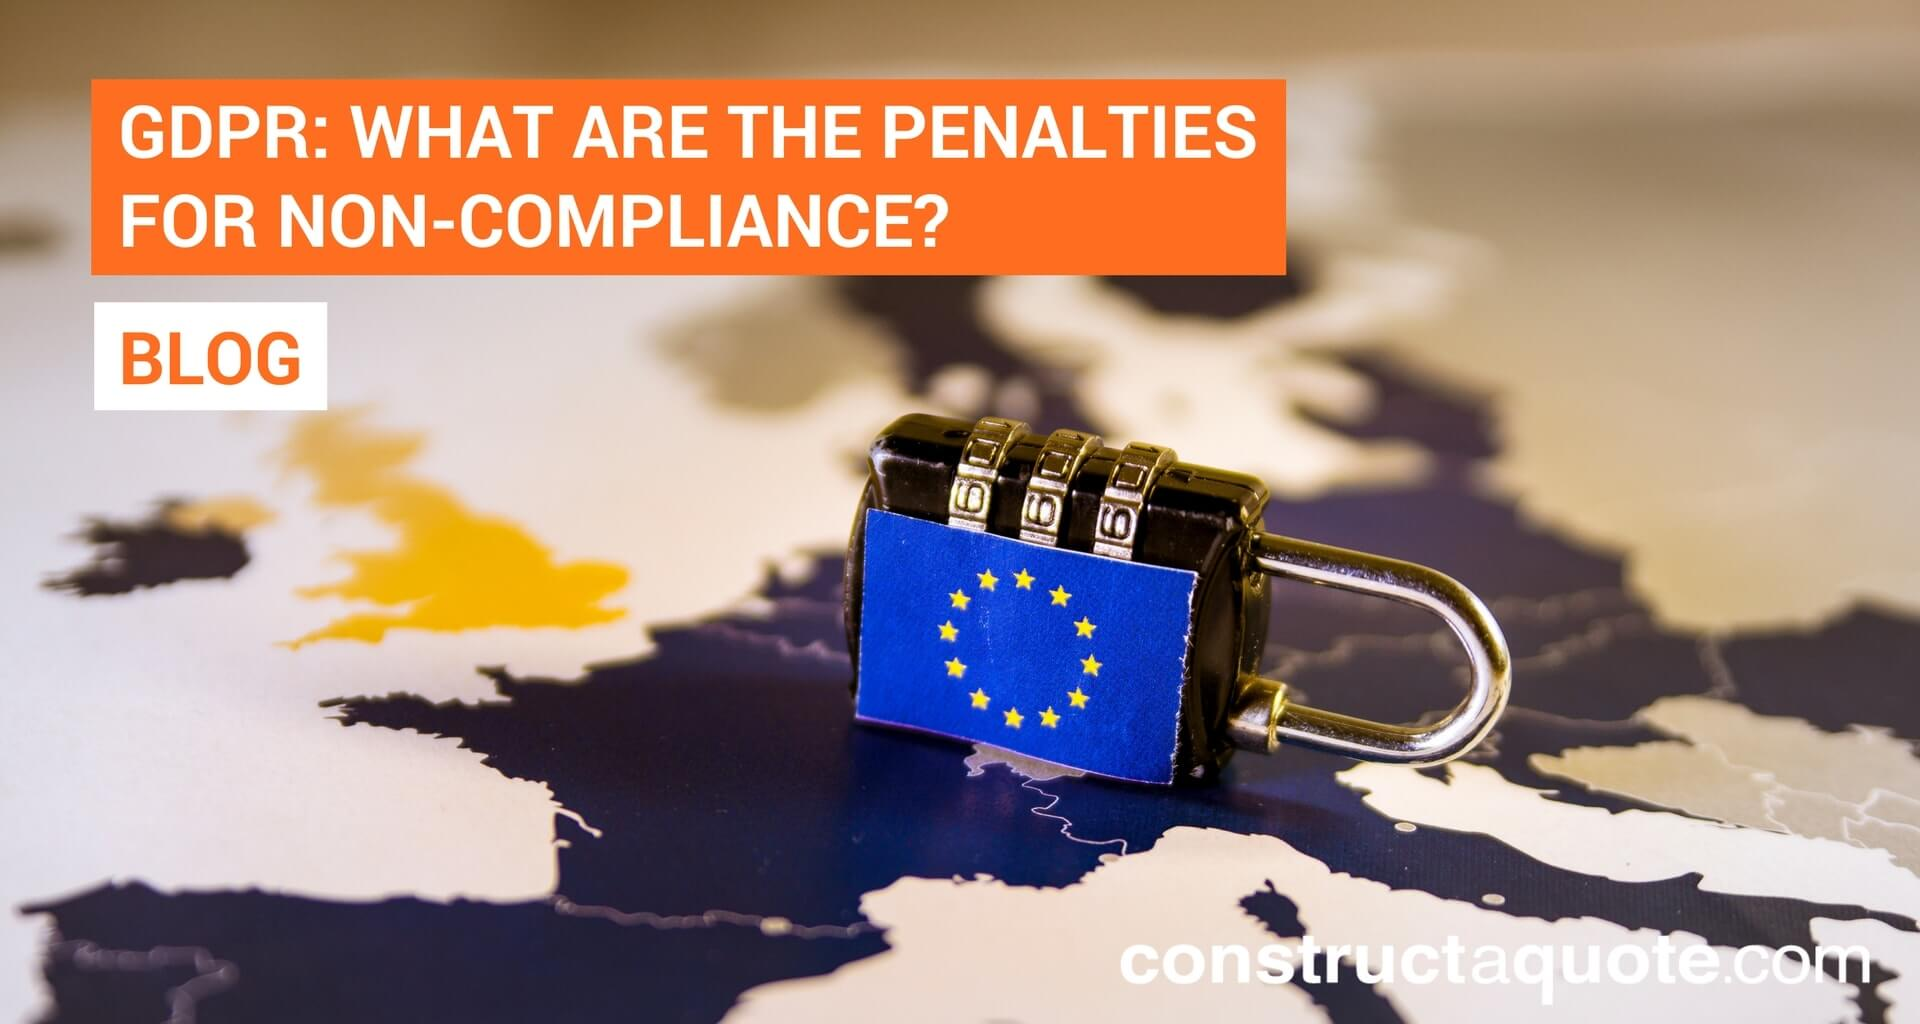 GDPR: What are the penalties for non-compliance?